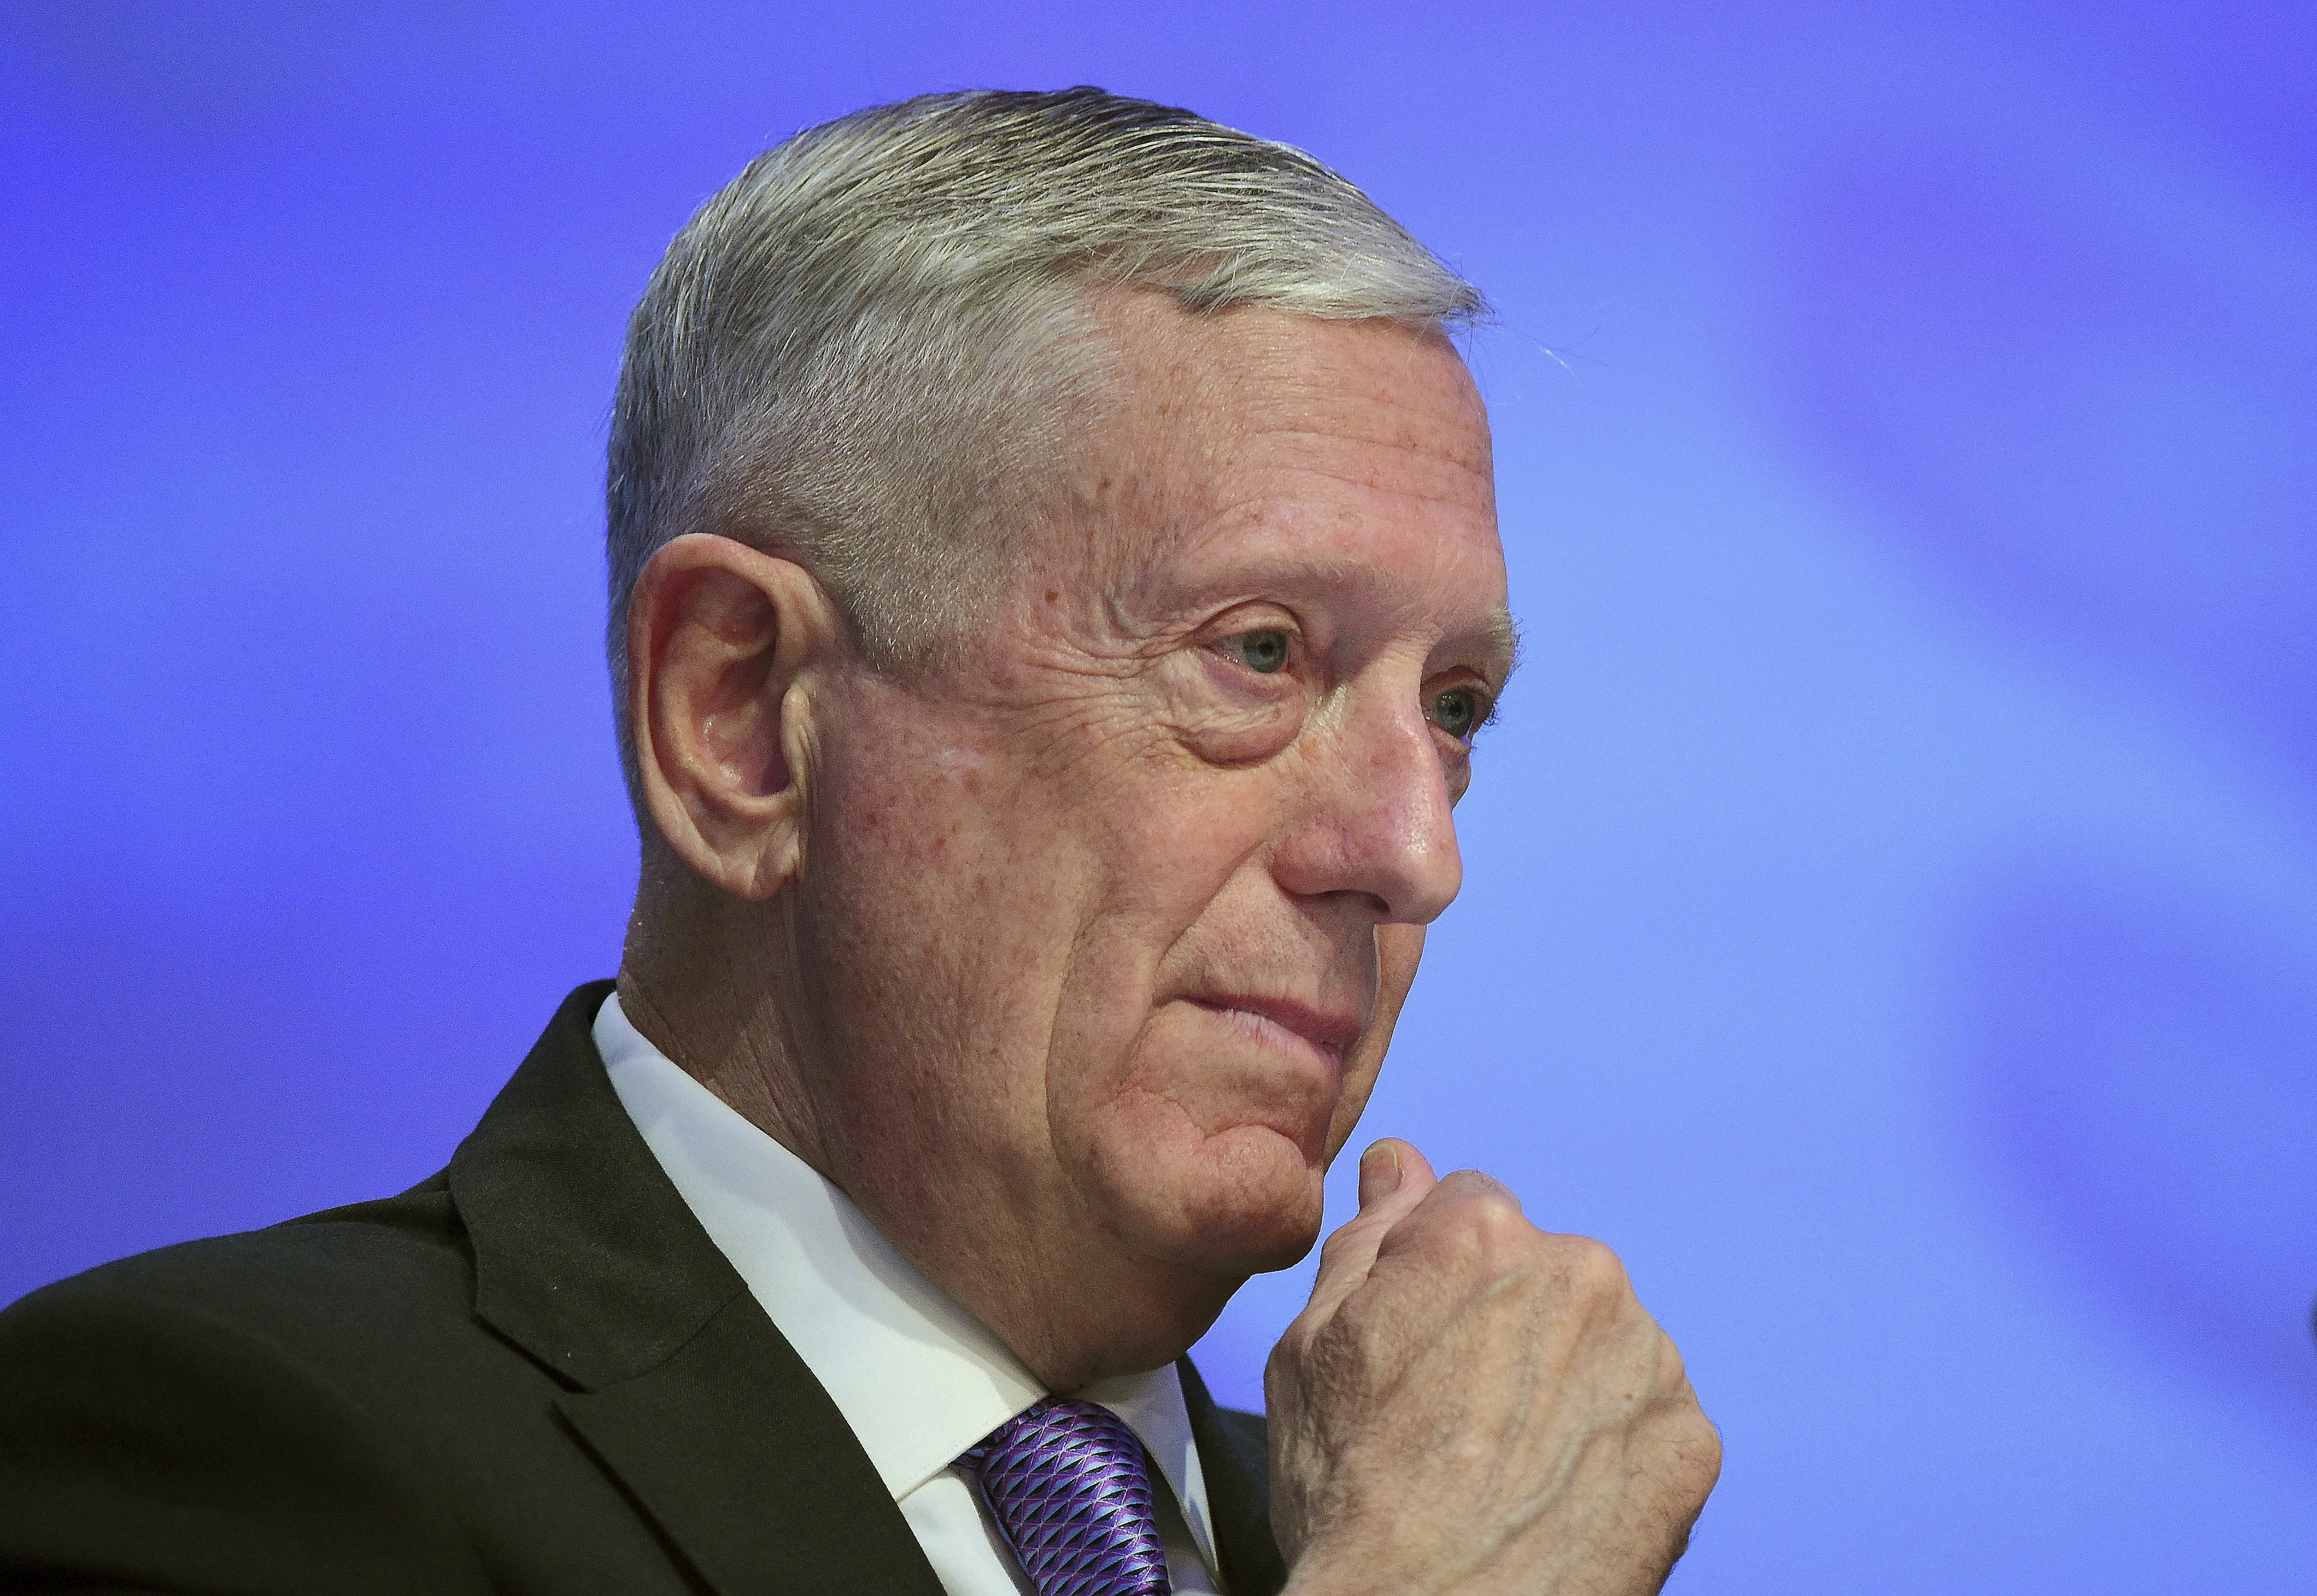 Mattis: North Korea a 'clear and present danger' to world